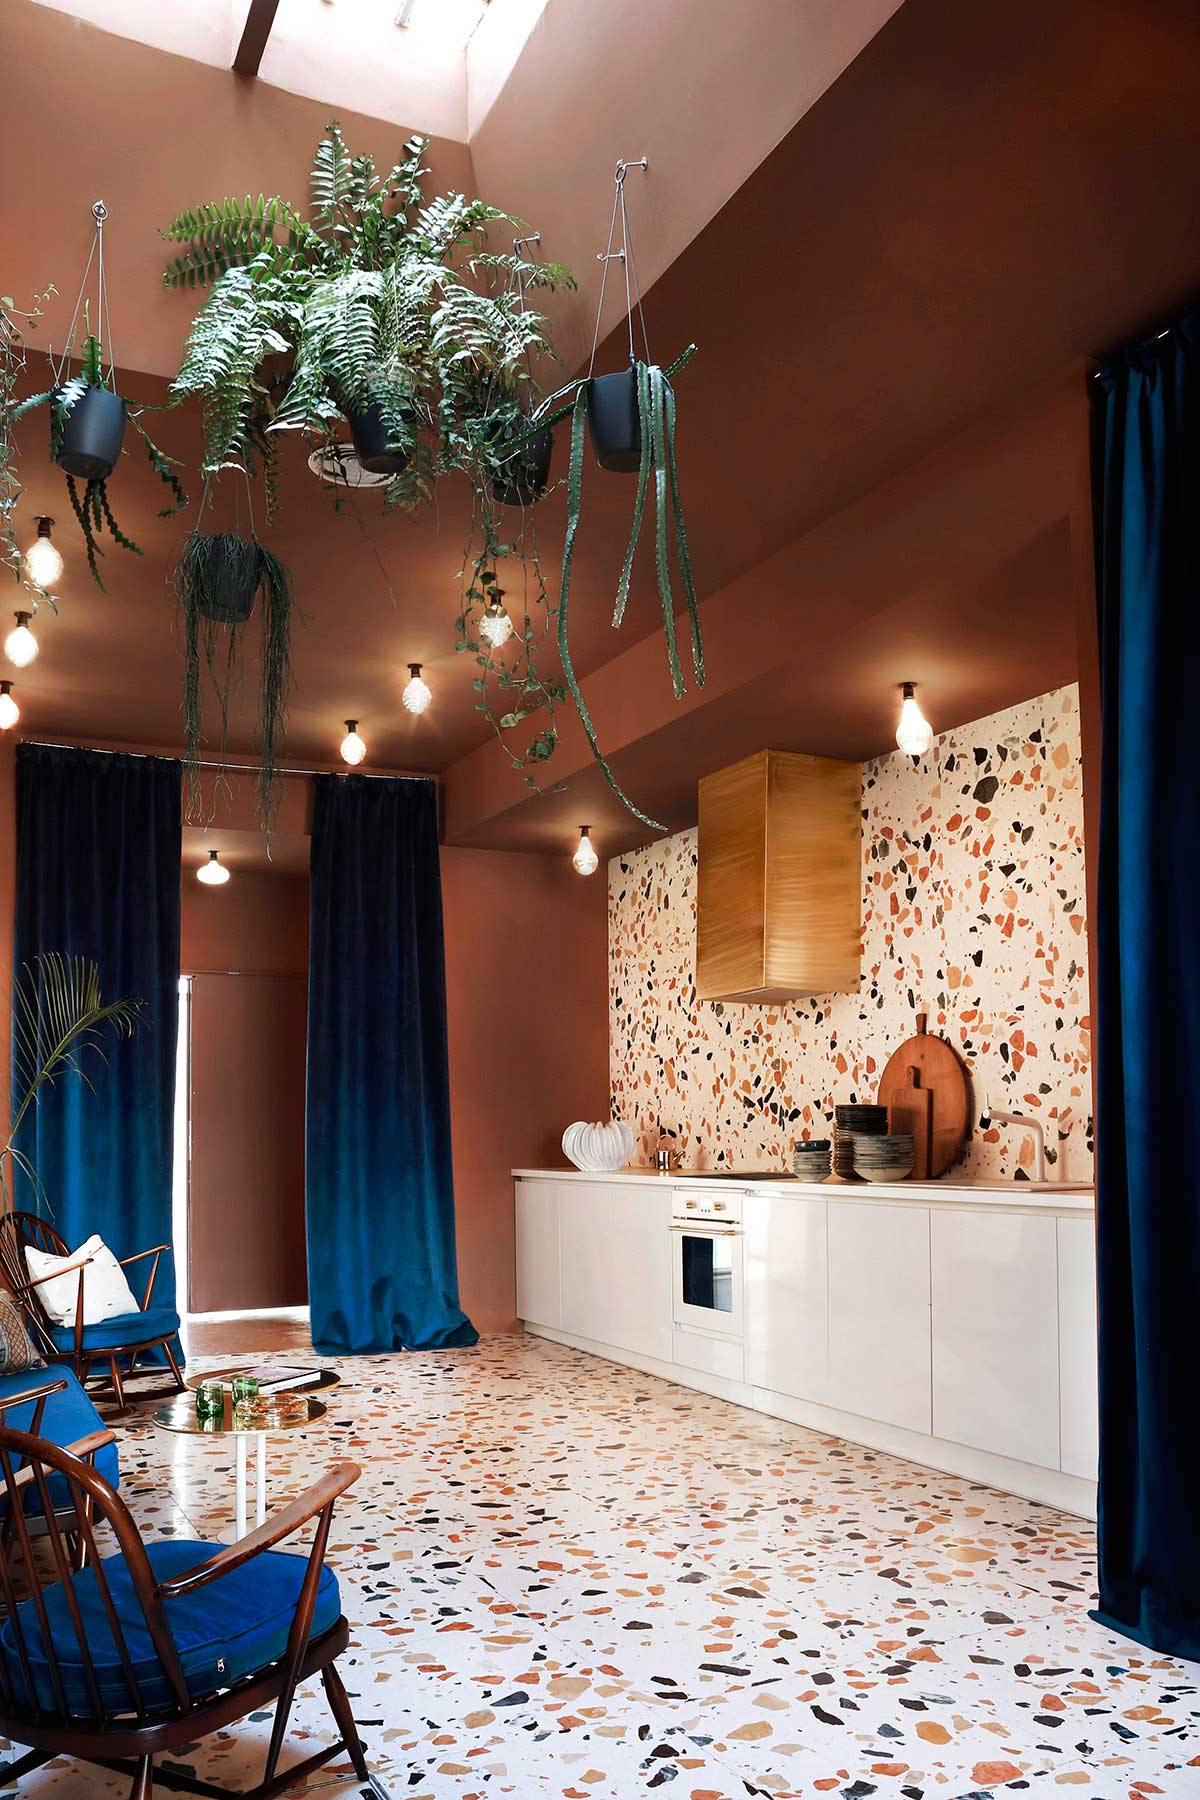 Kitchen for a Madrid Creative Space, Marmoreal by Max Lamb | Yellowtrace